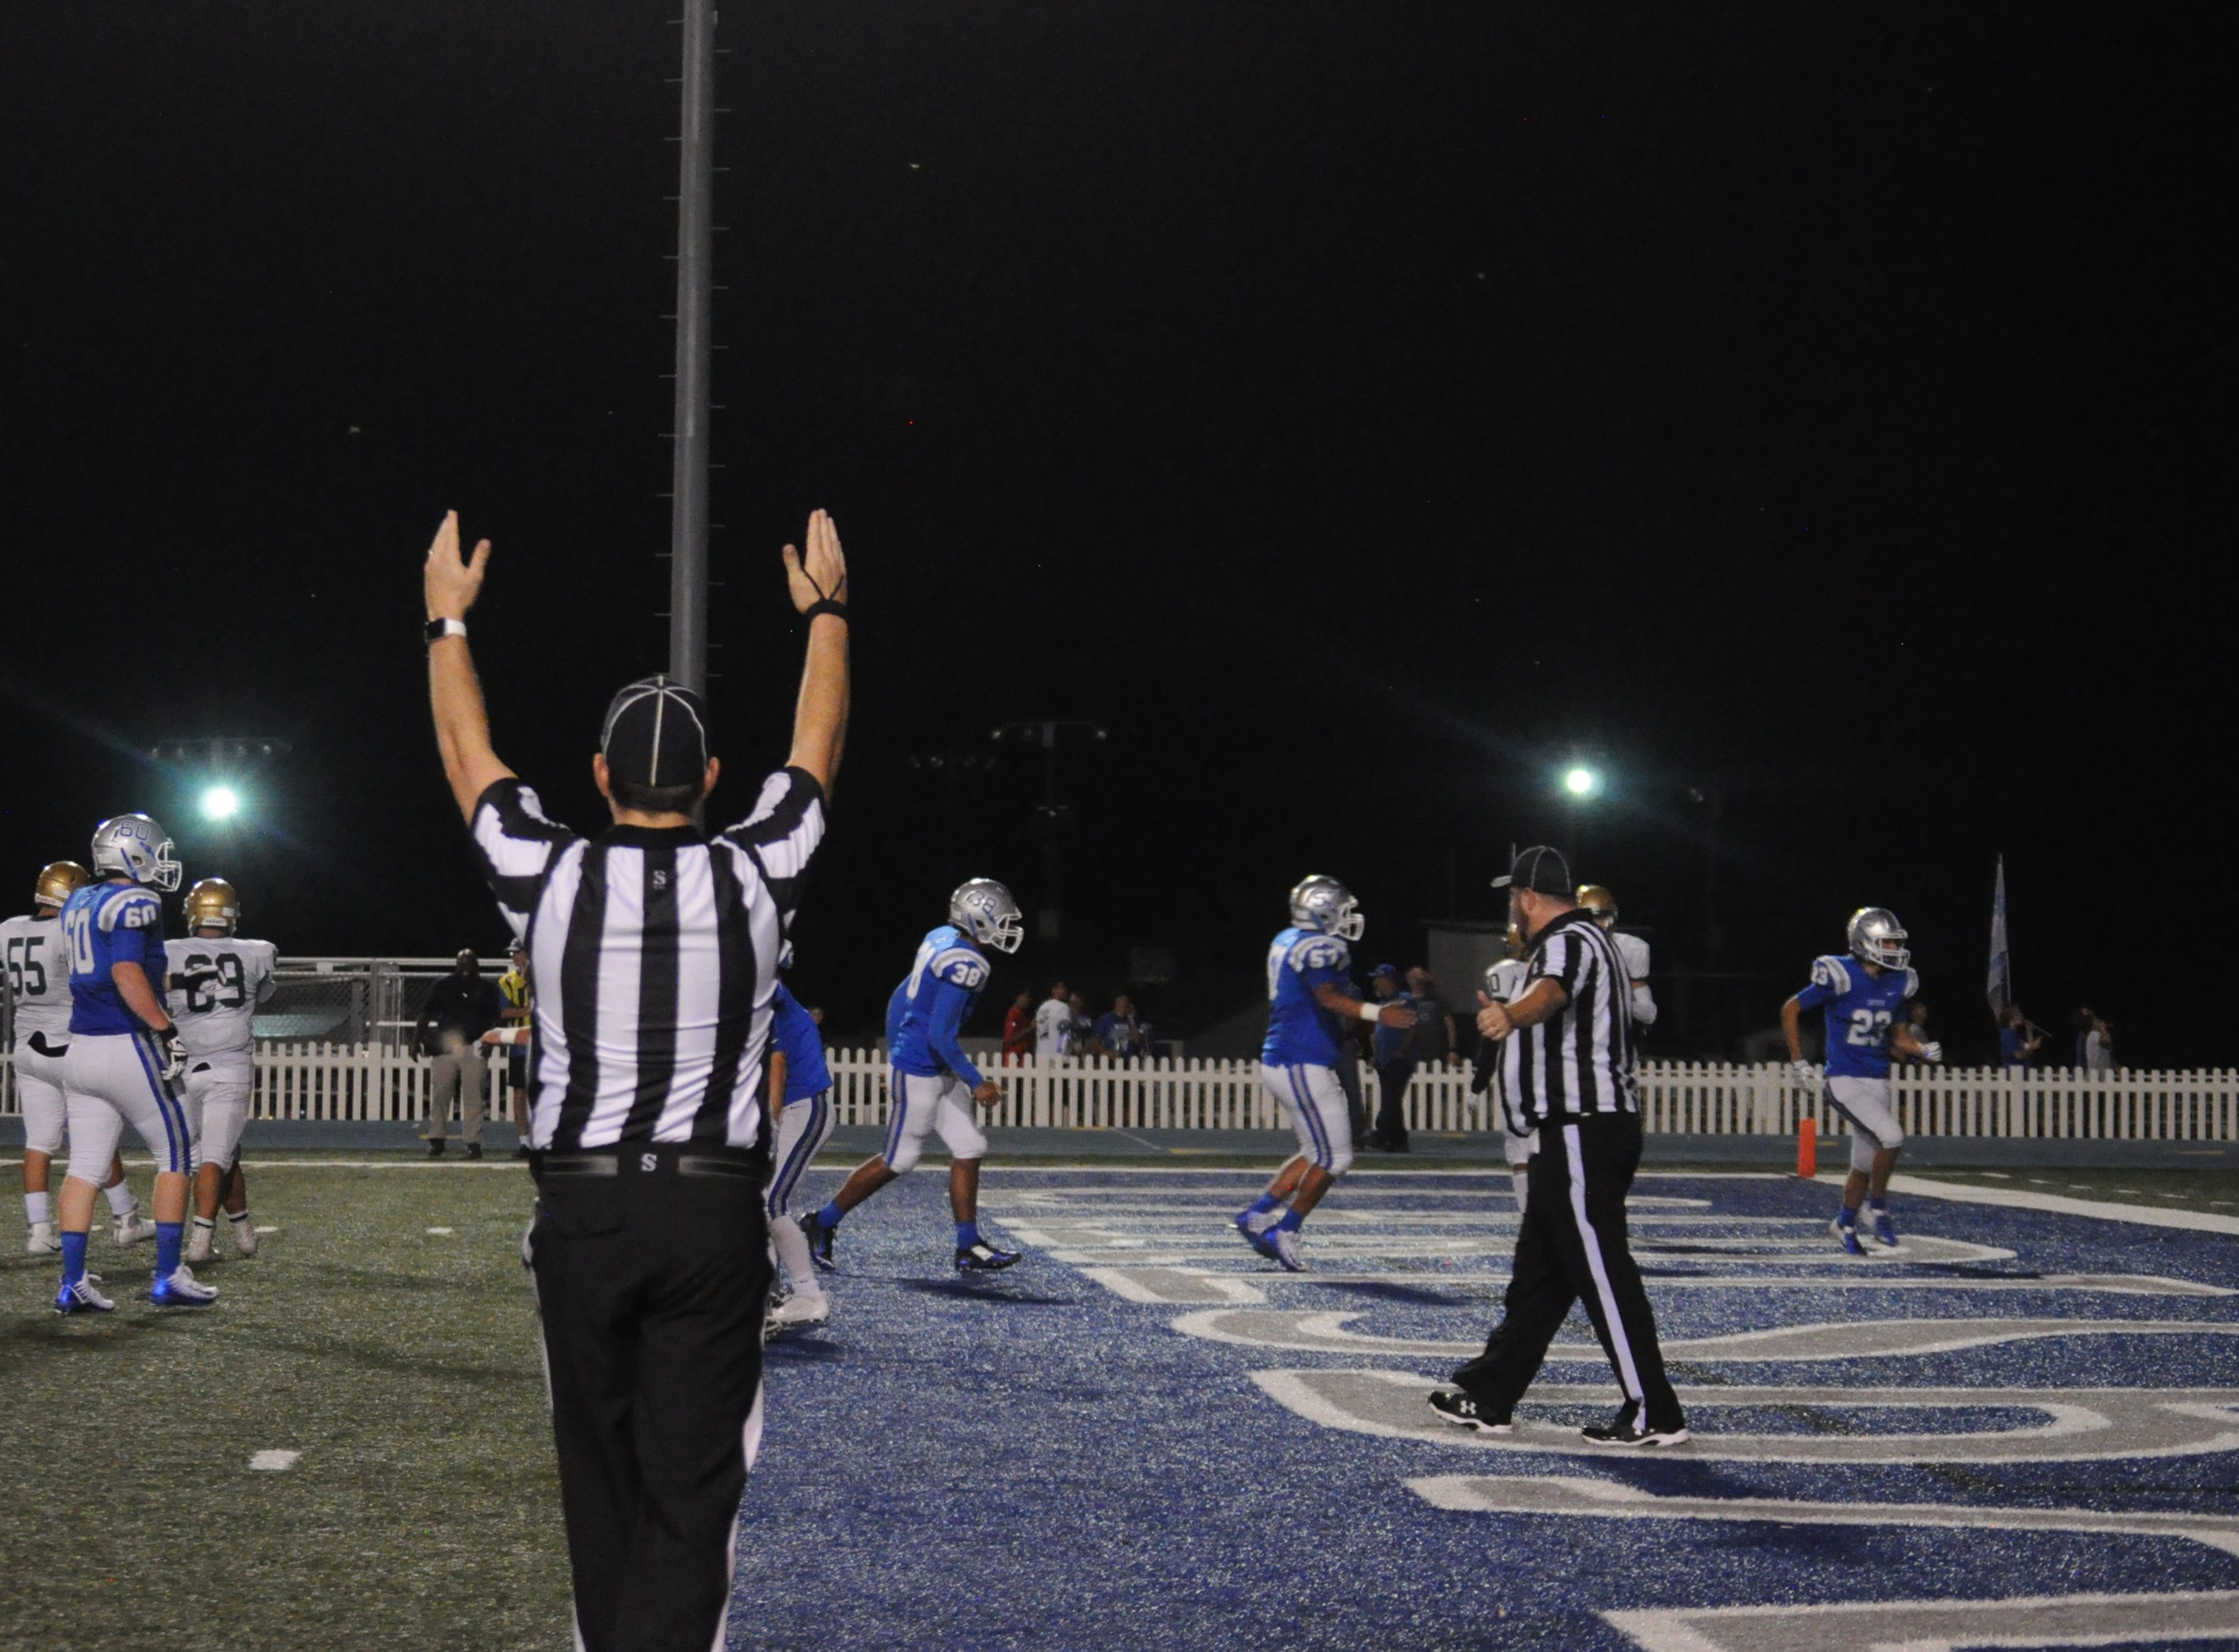 A Cavemen touchdown is called in the third quarter of the Cavemen vs. Jaguars game Sep. 7.